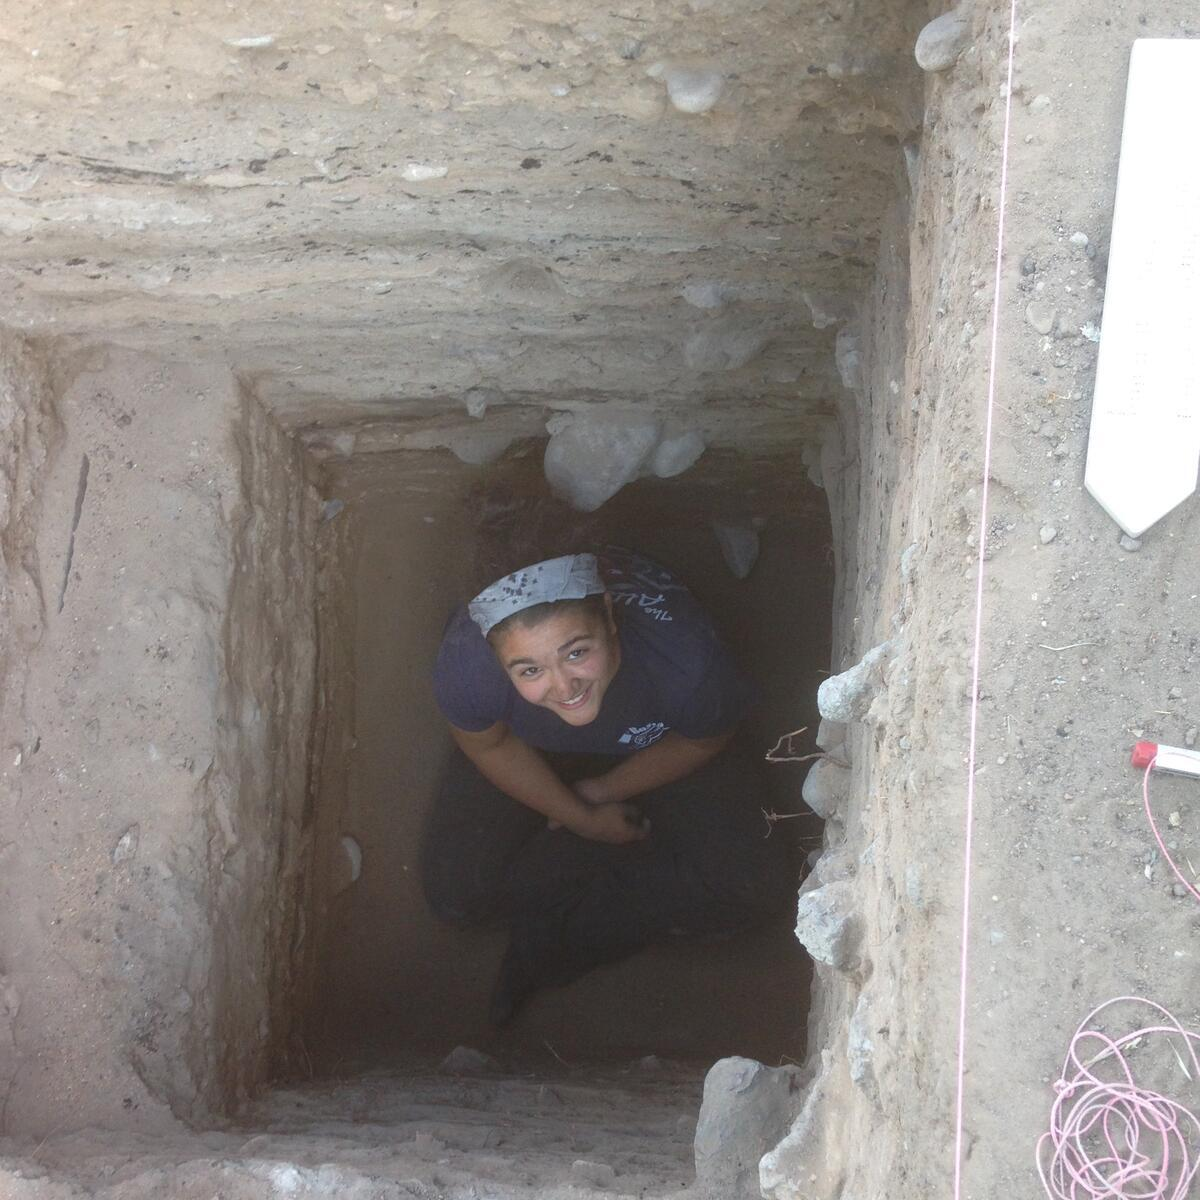 Person sitting in deep, square hole while looking up at camera, smiling.